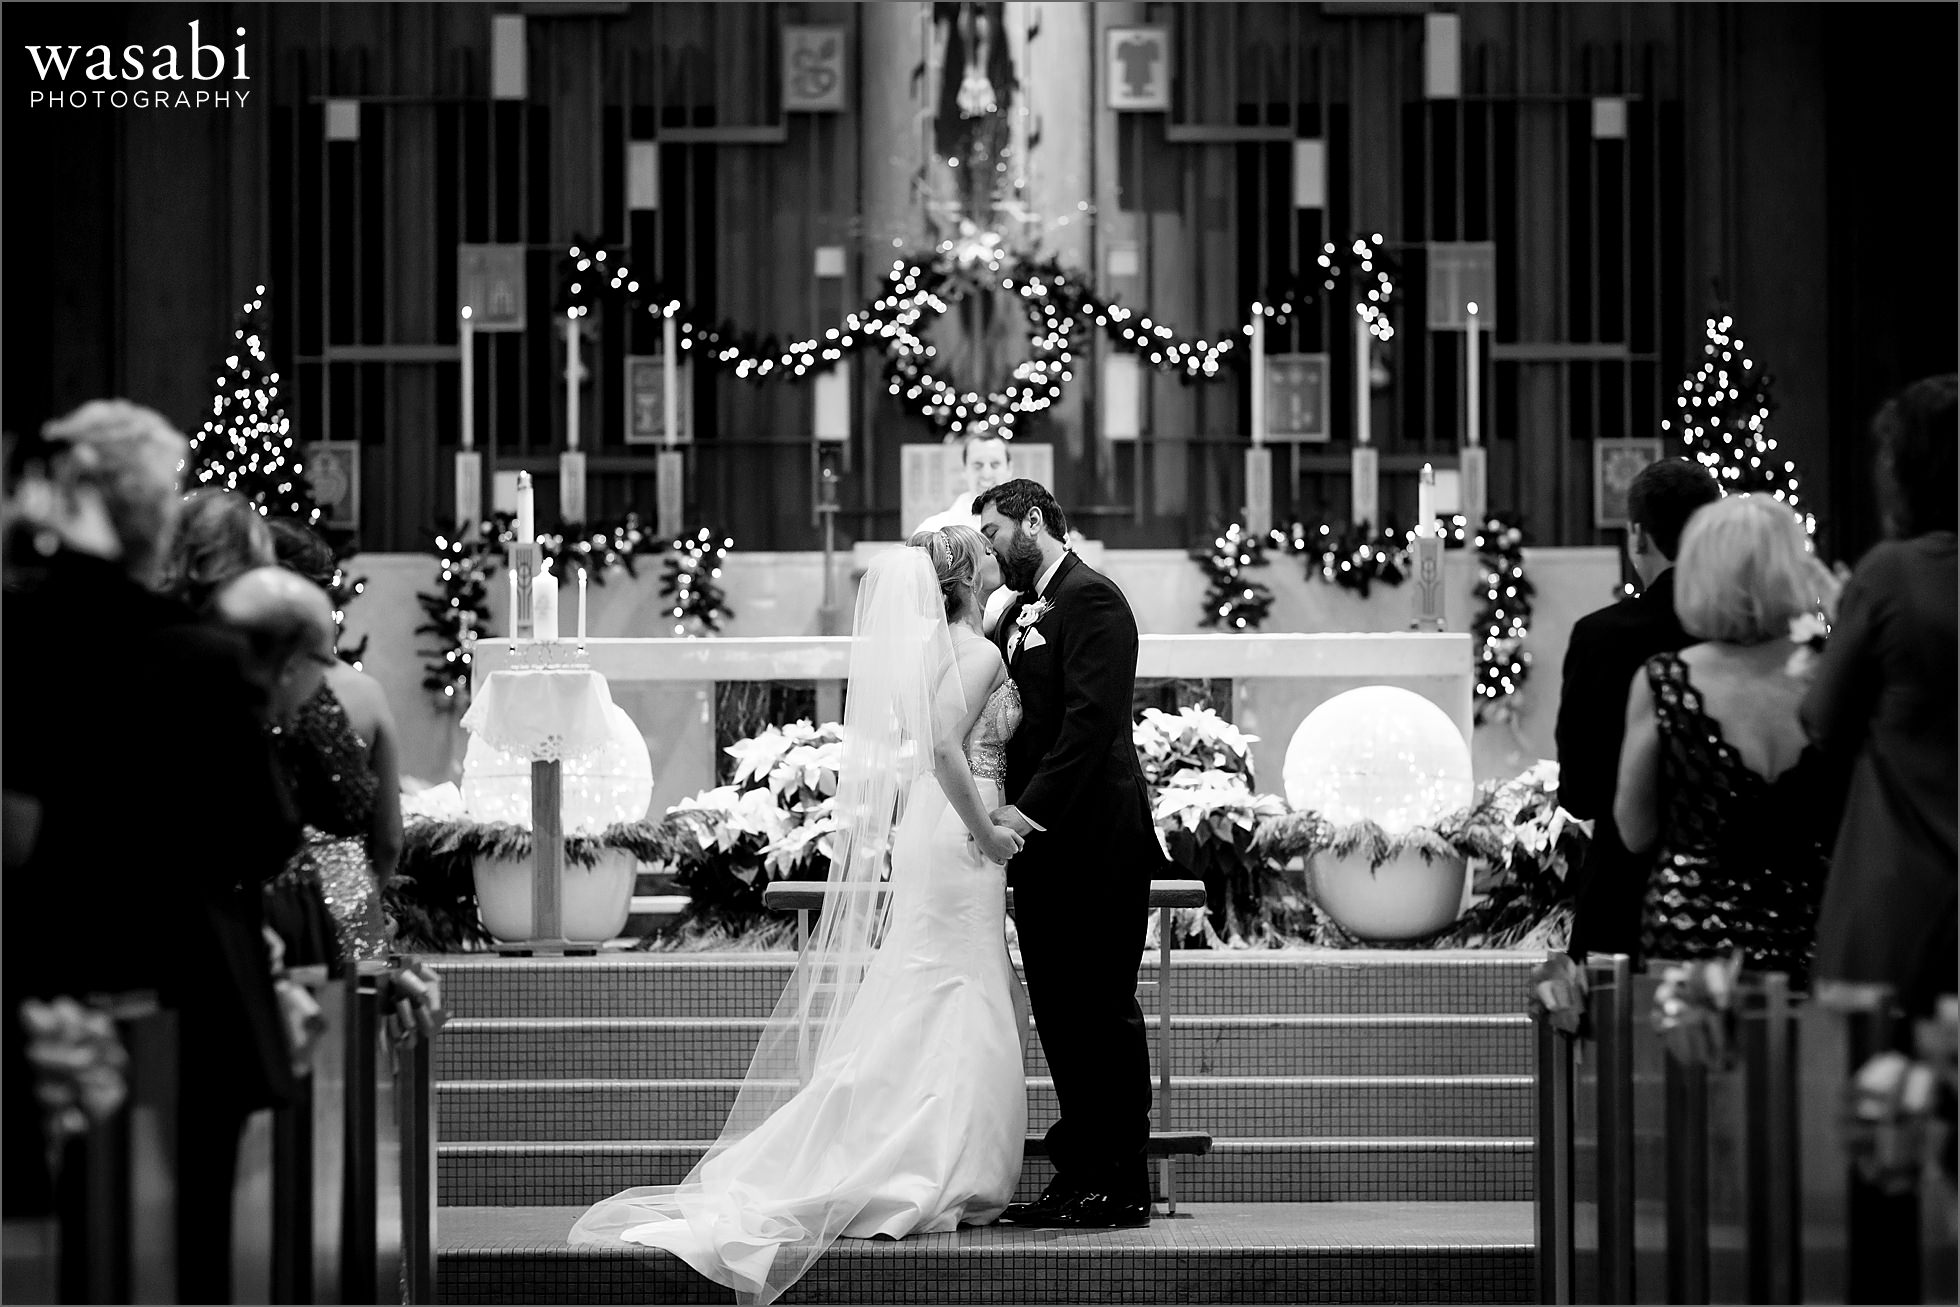 black and white first kiss wide photo during wedding ceremony at Immaculate Conception Catholic Church in Chicago